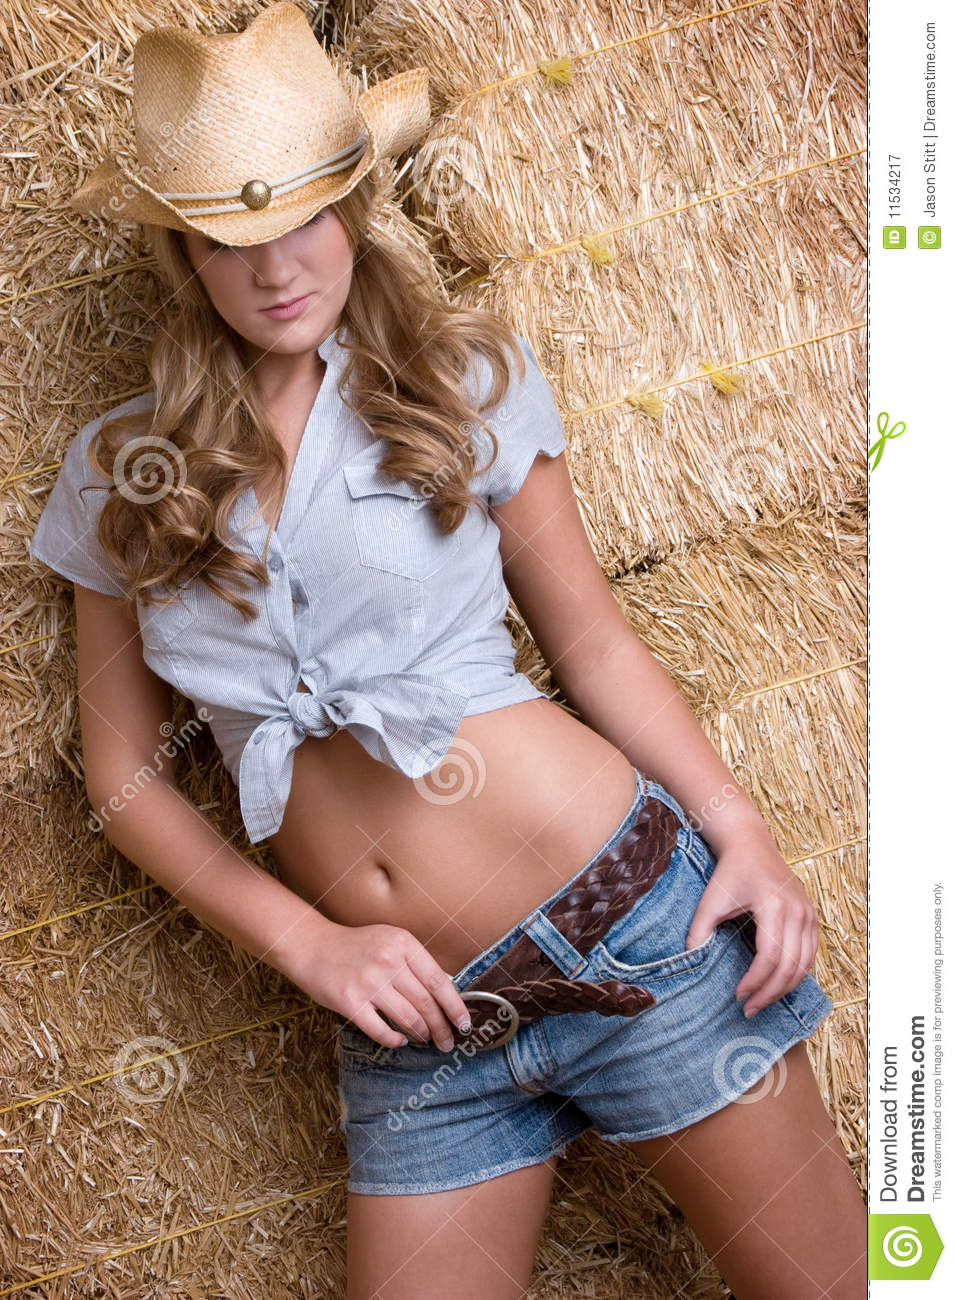 Sexy Country Woman Royalty Free Stock Photography Image